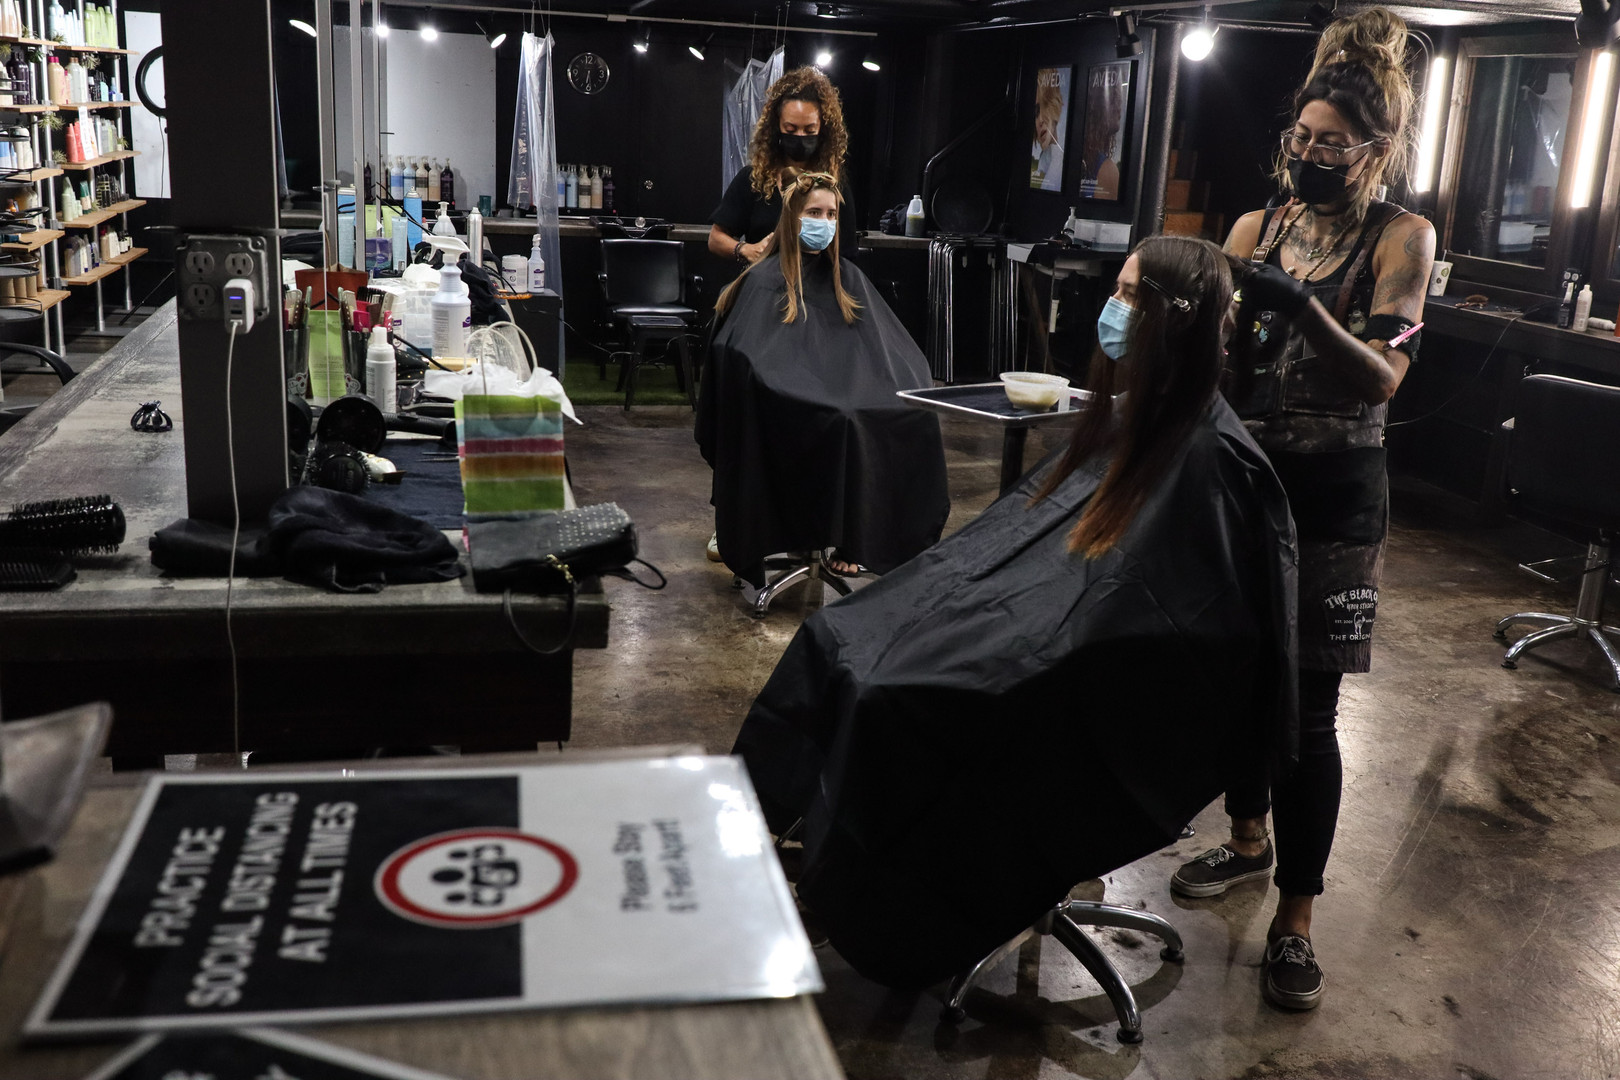 The Black Cat Salon + Spa barbers work inside the salon maintaining social distancing on October 17, 2020. After O'ahu saw new COVID-19 relatively low infection rate, the city eased more restrictions on businesses and activities Thursday, October 22, 2020.